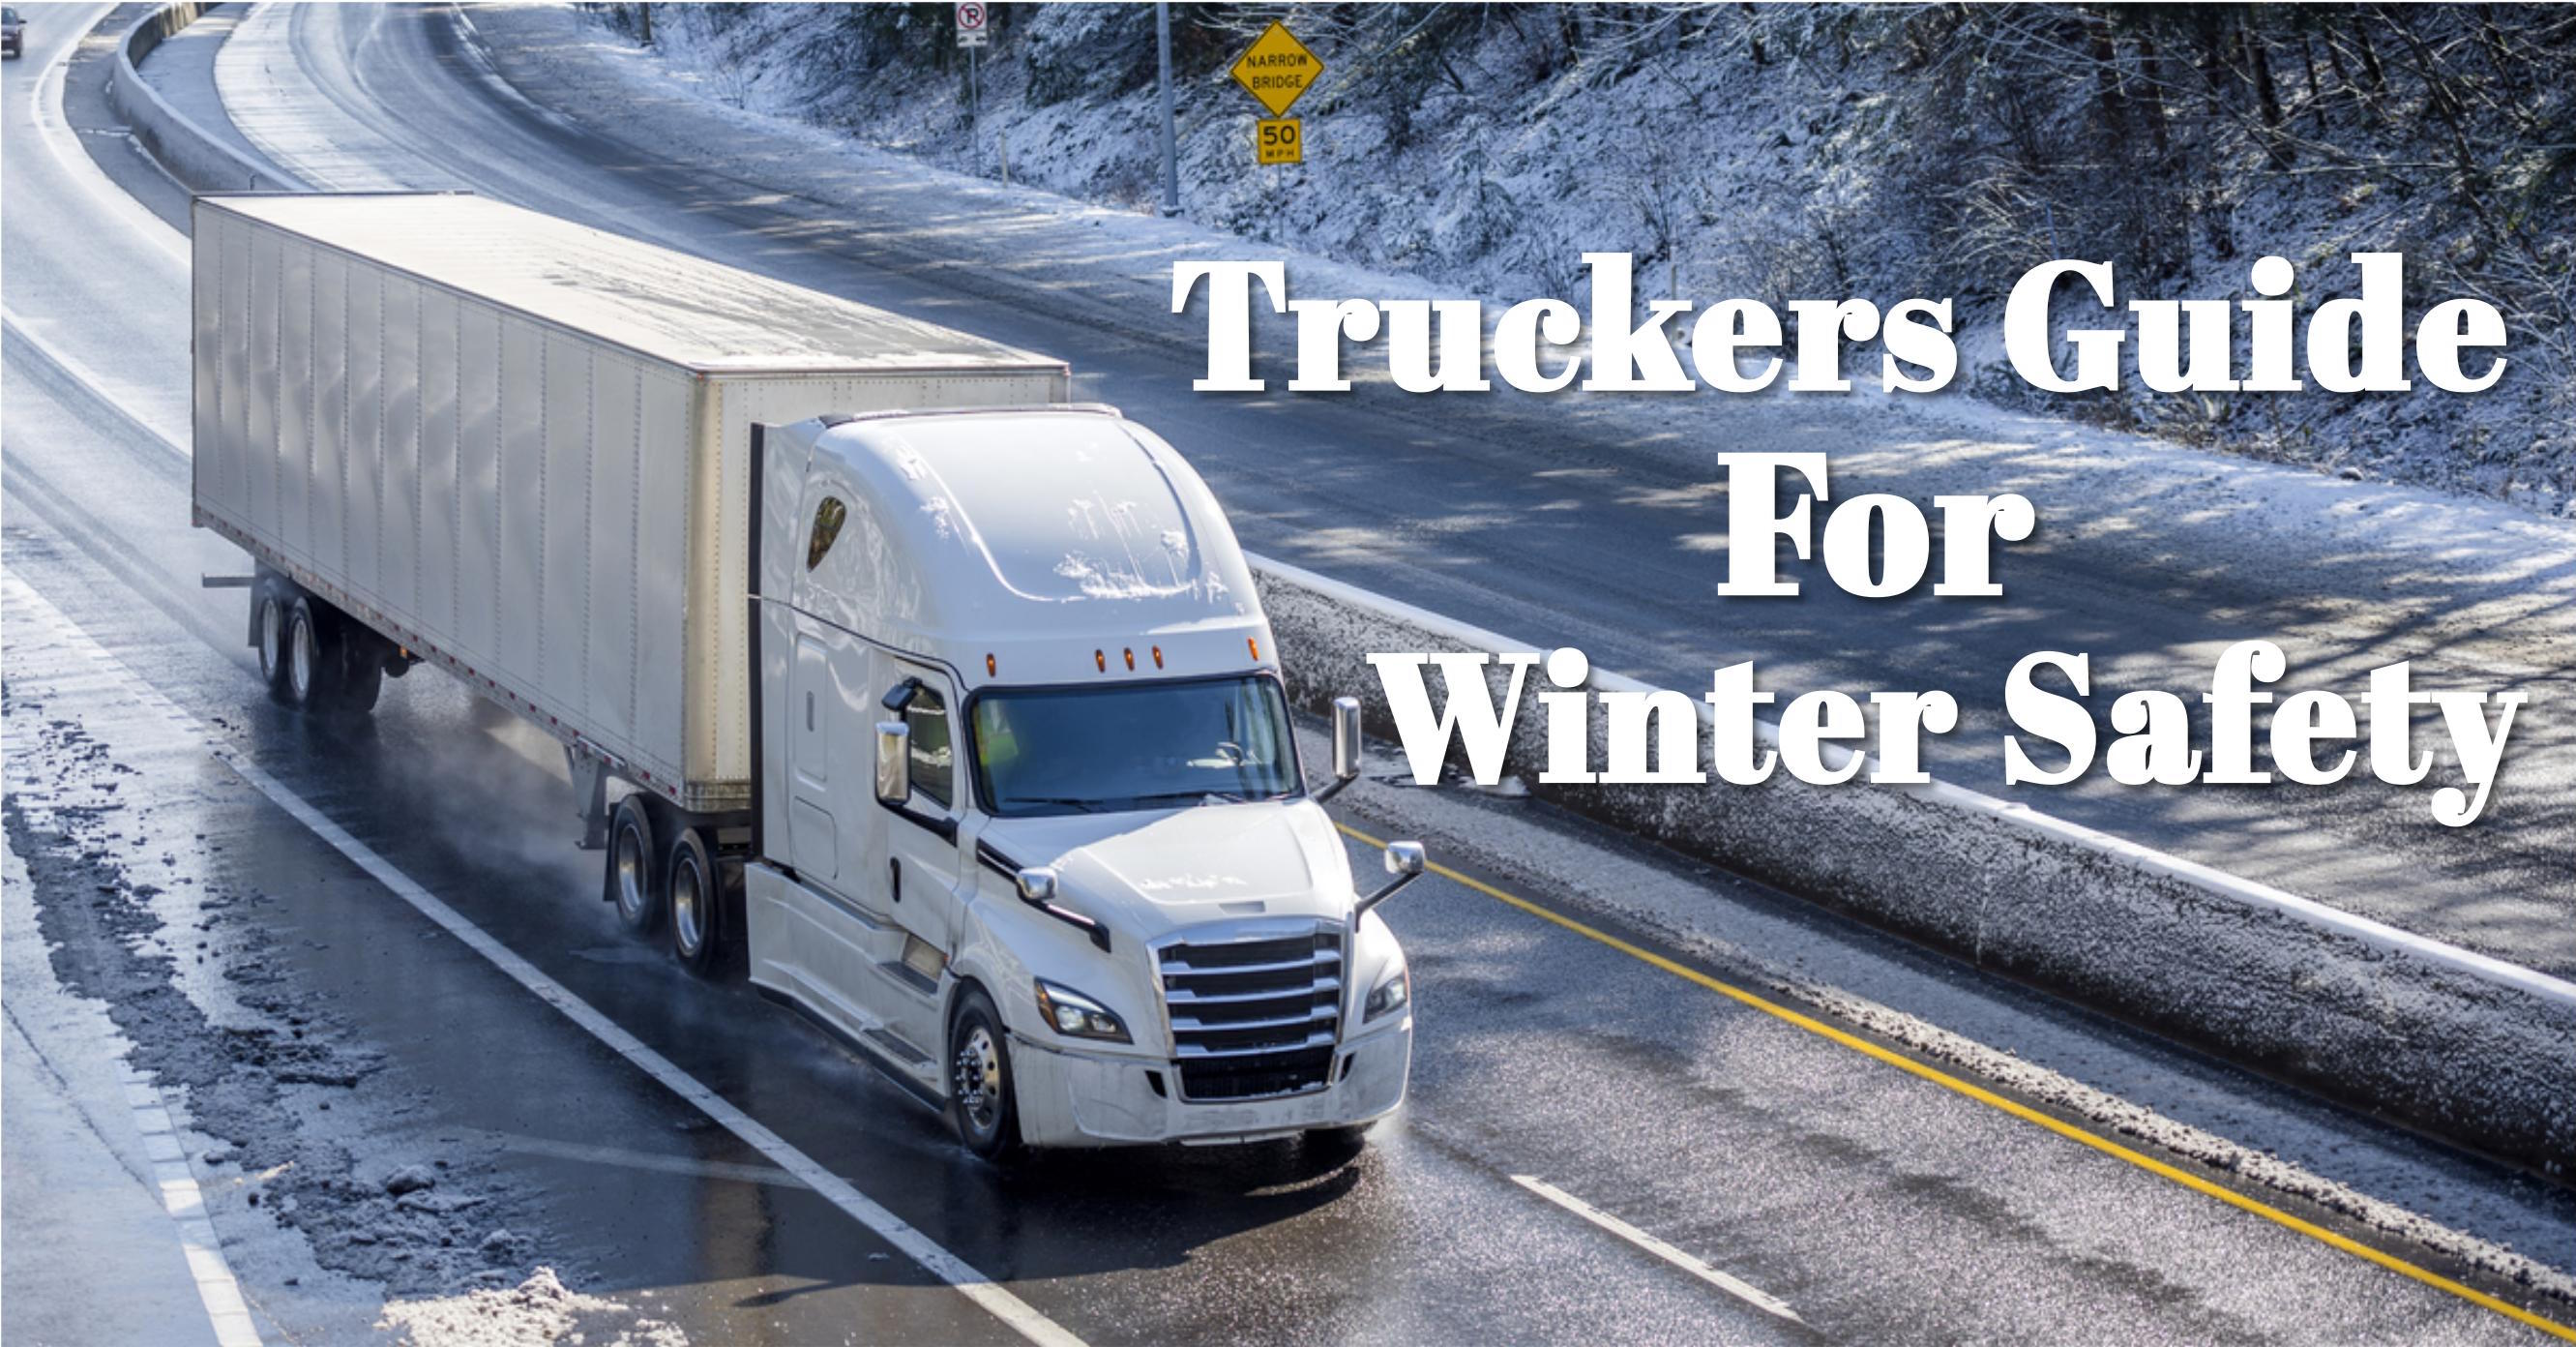 Truckers Guide for Winter Safety